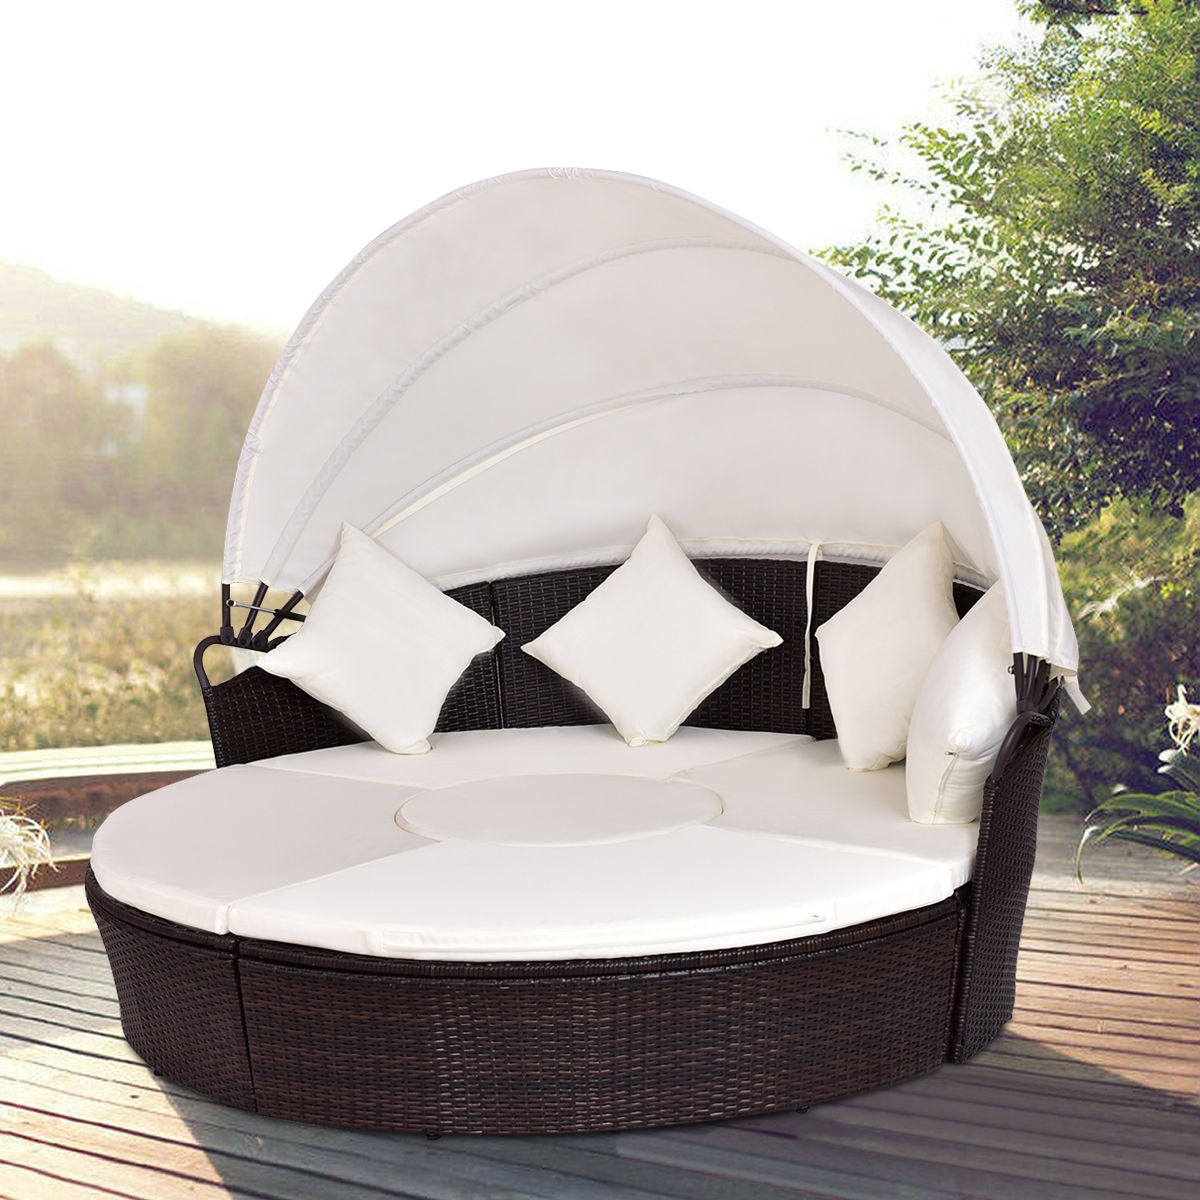 Giantex Outdoor Patio Canopy Cushioned Daybed Round Retractable Sofa Bed Modern Rattan Furniture Set HW54808+ rectangle rattan sofa holiday outdoor rattan sofa bed terrace sun bed outdoor leisure patio balcony sofa bed chair with tent